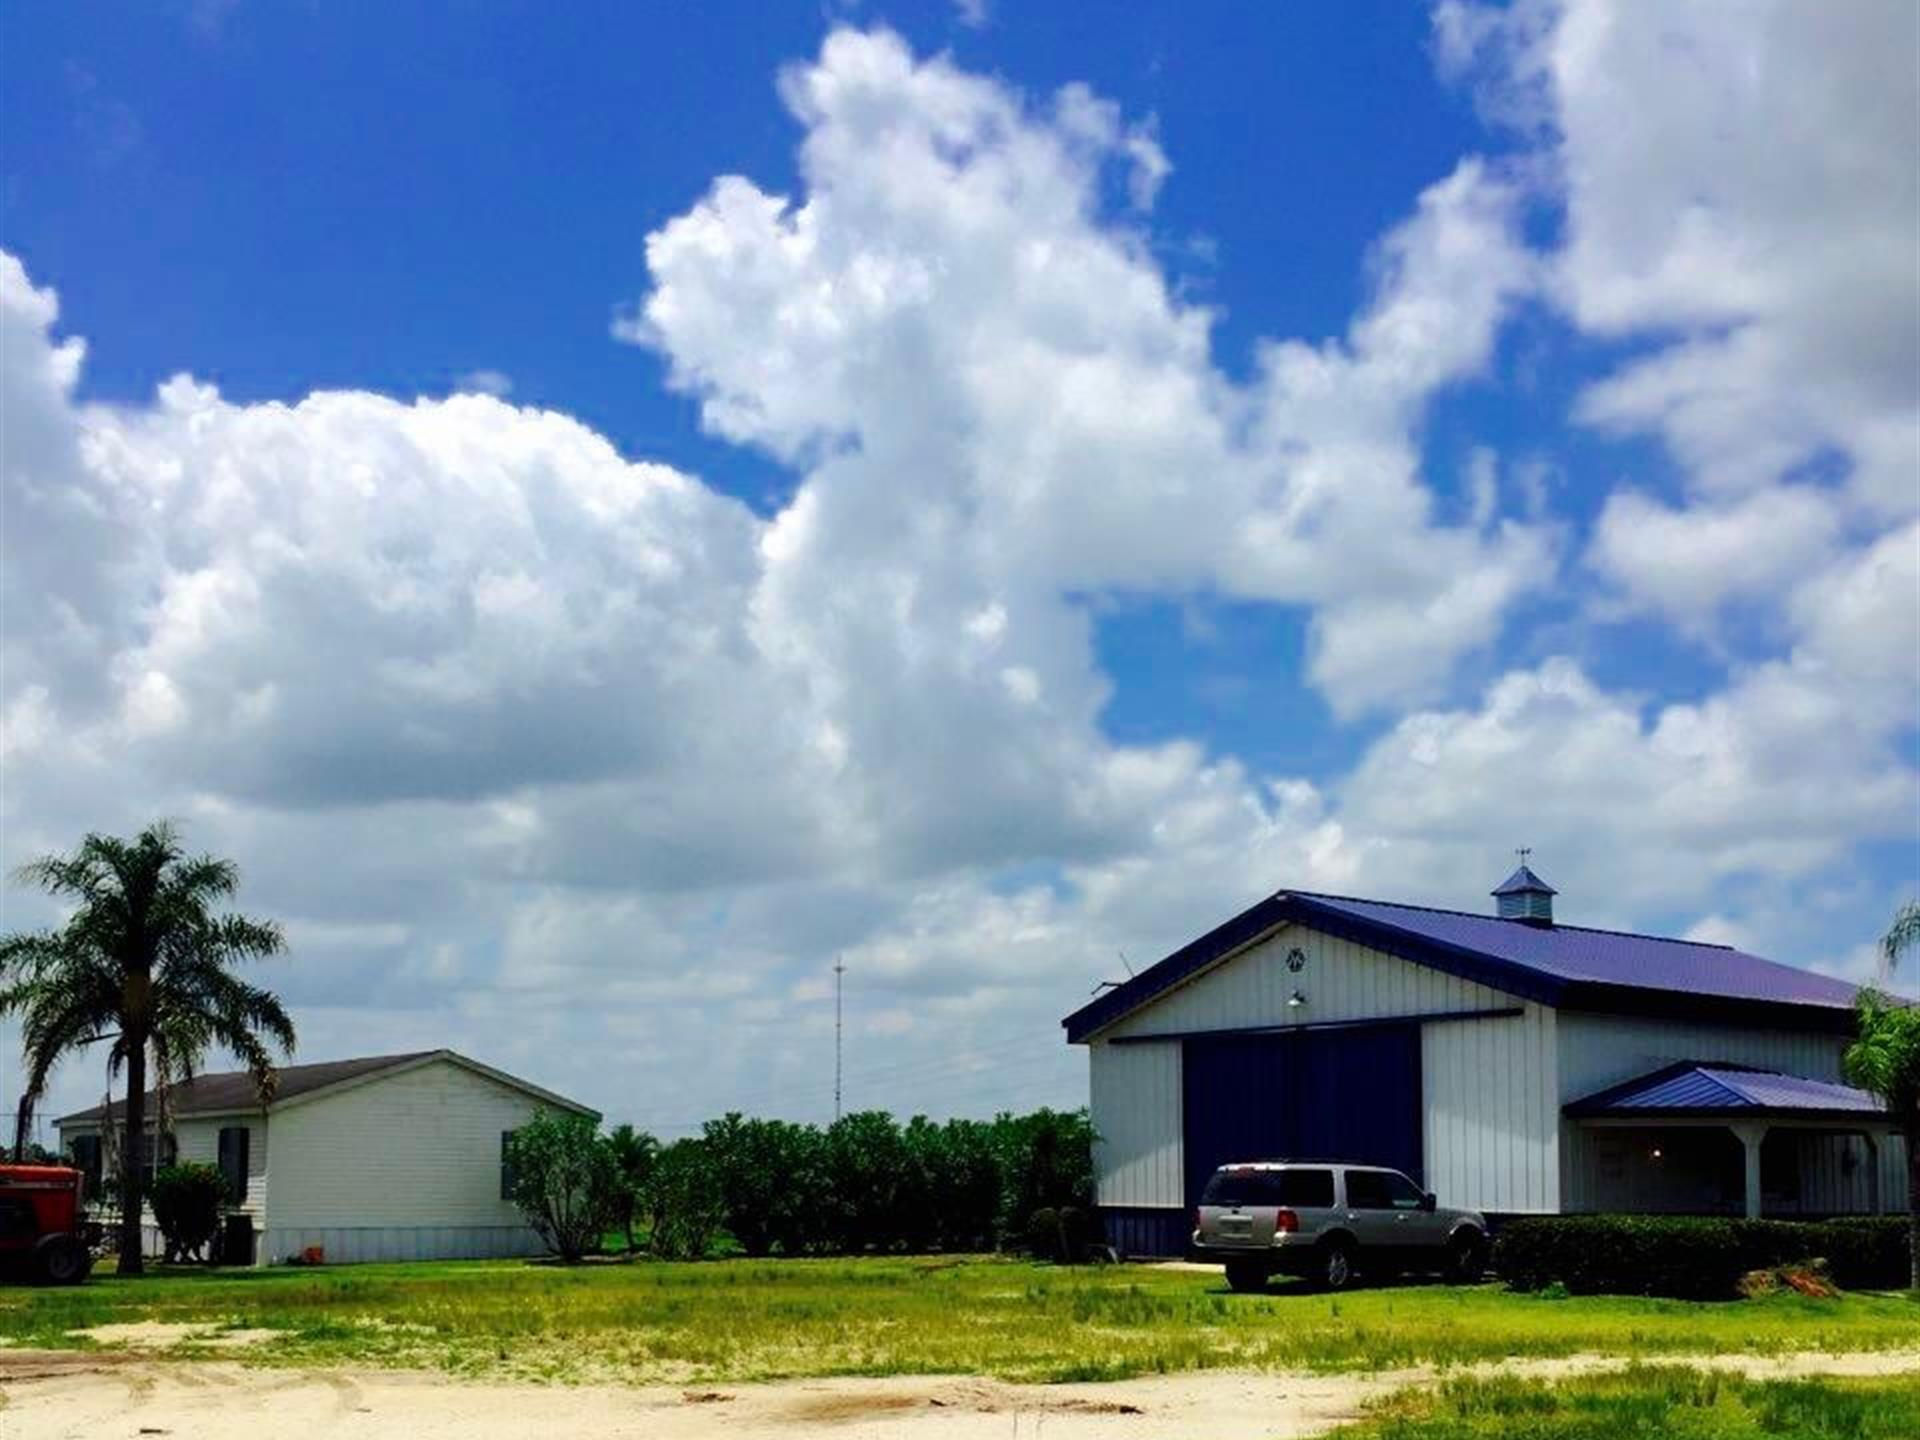 70 Acre Farm With Home And Shop : Farm for Sale by Owner : Fort ...